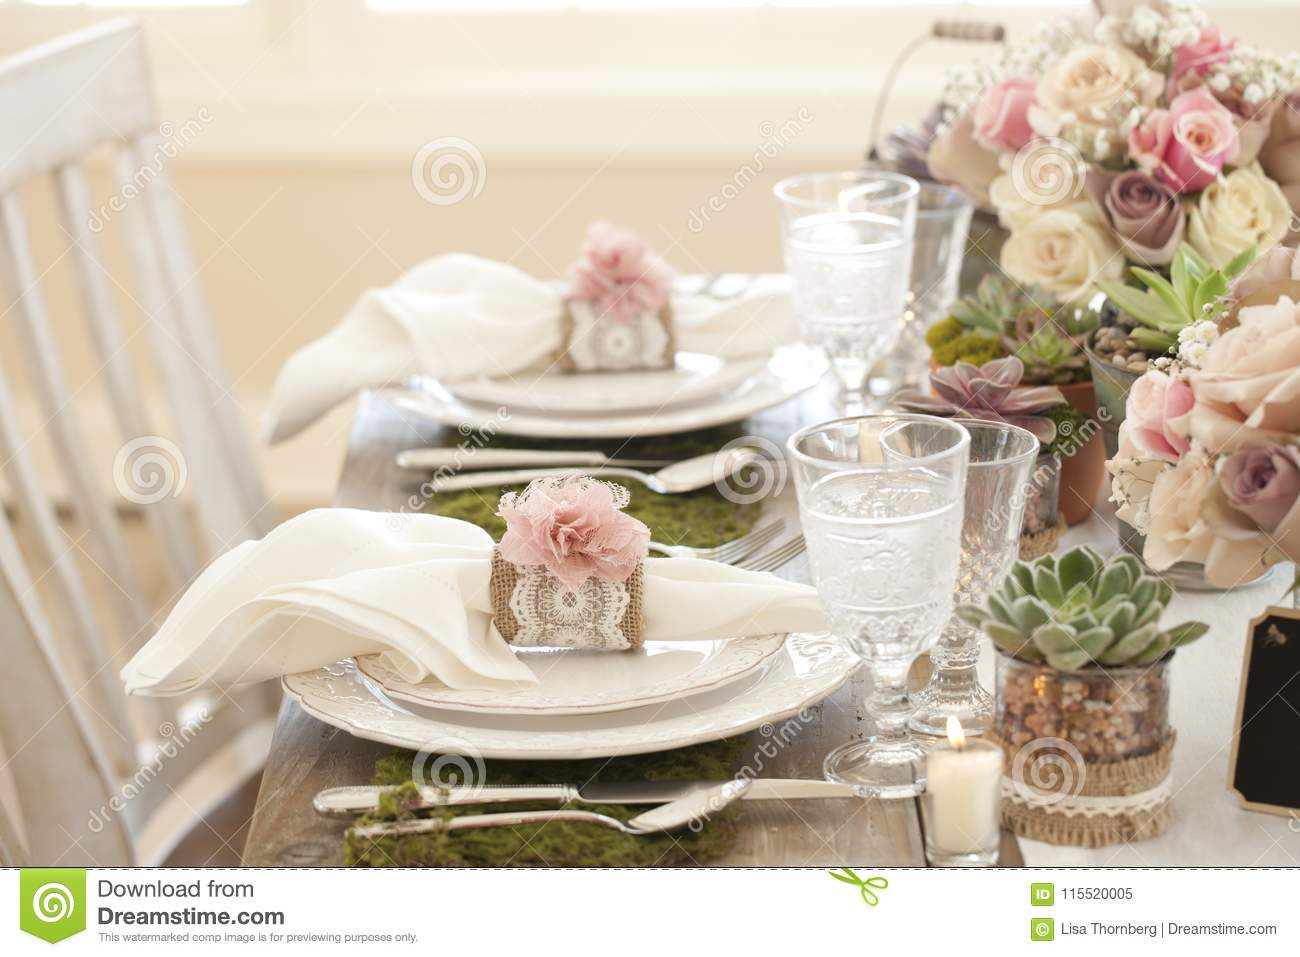 Rustic Wedding Reception Eco Friendly Dining Table Place Settings ...